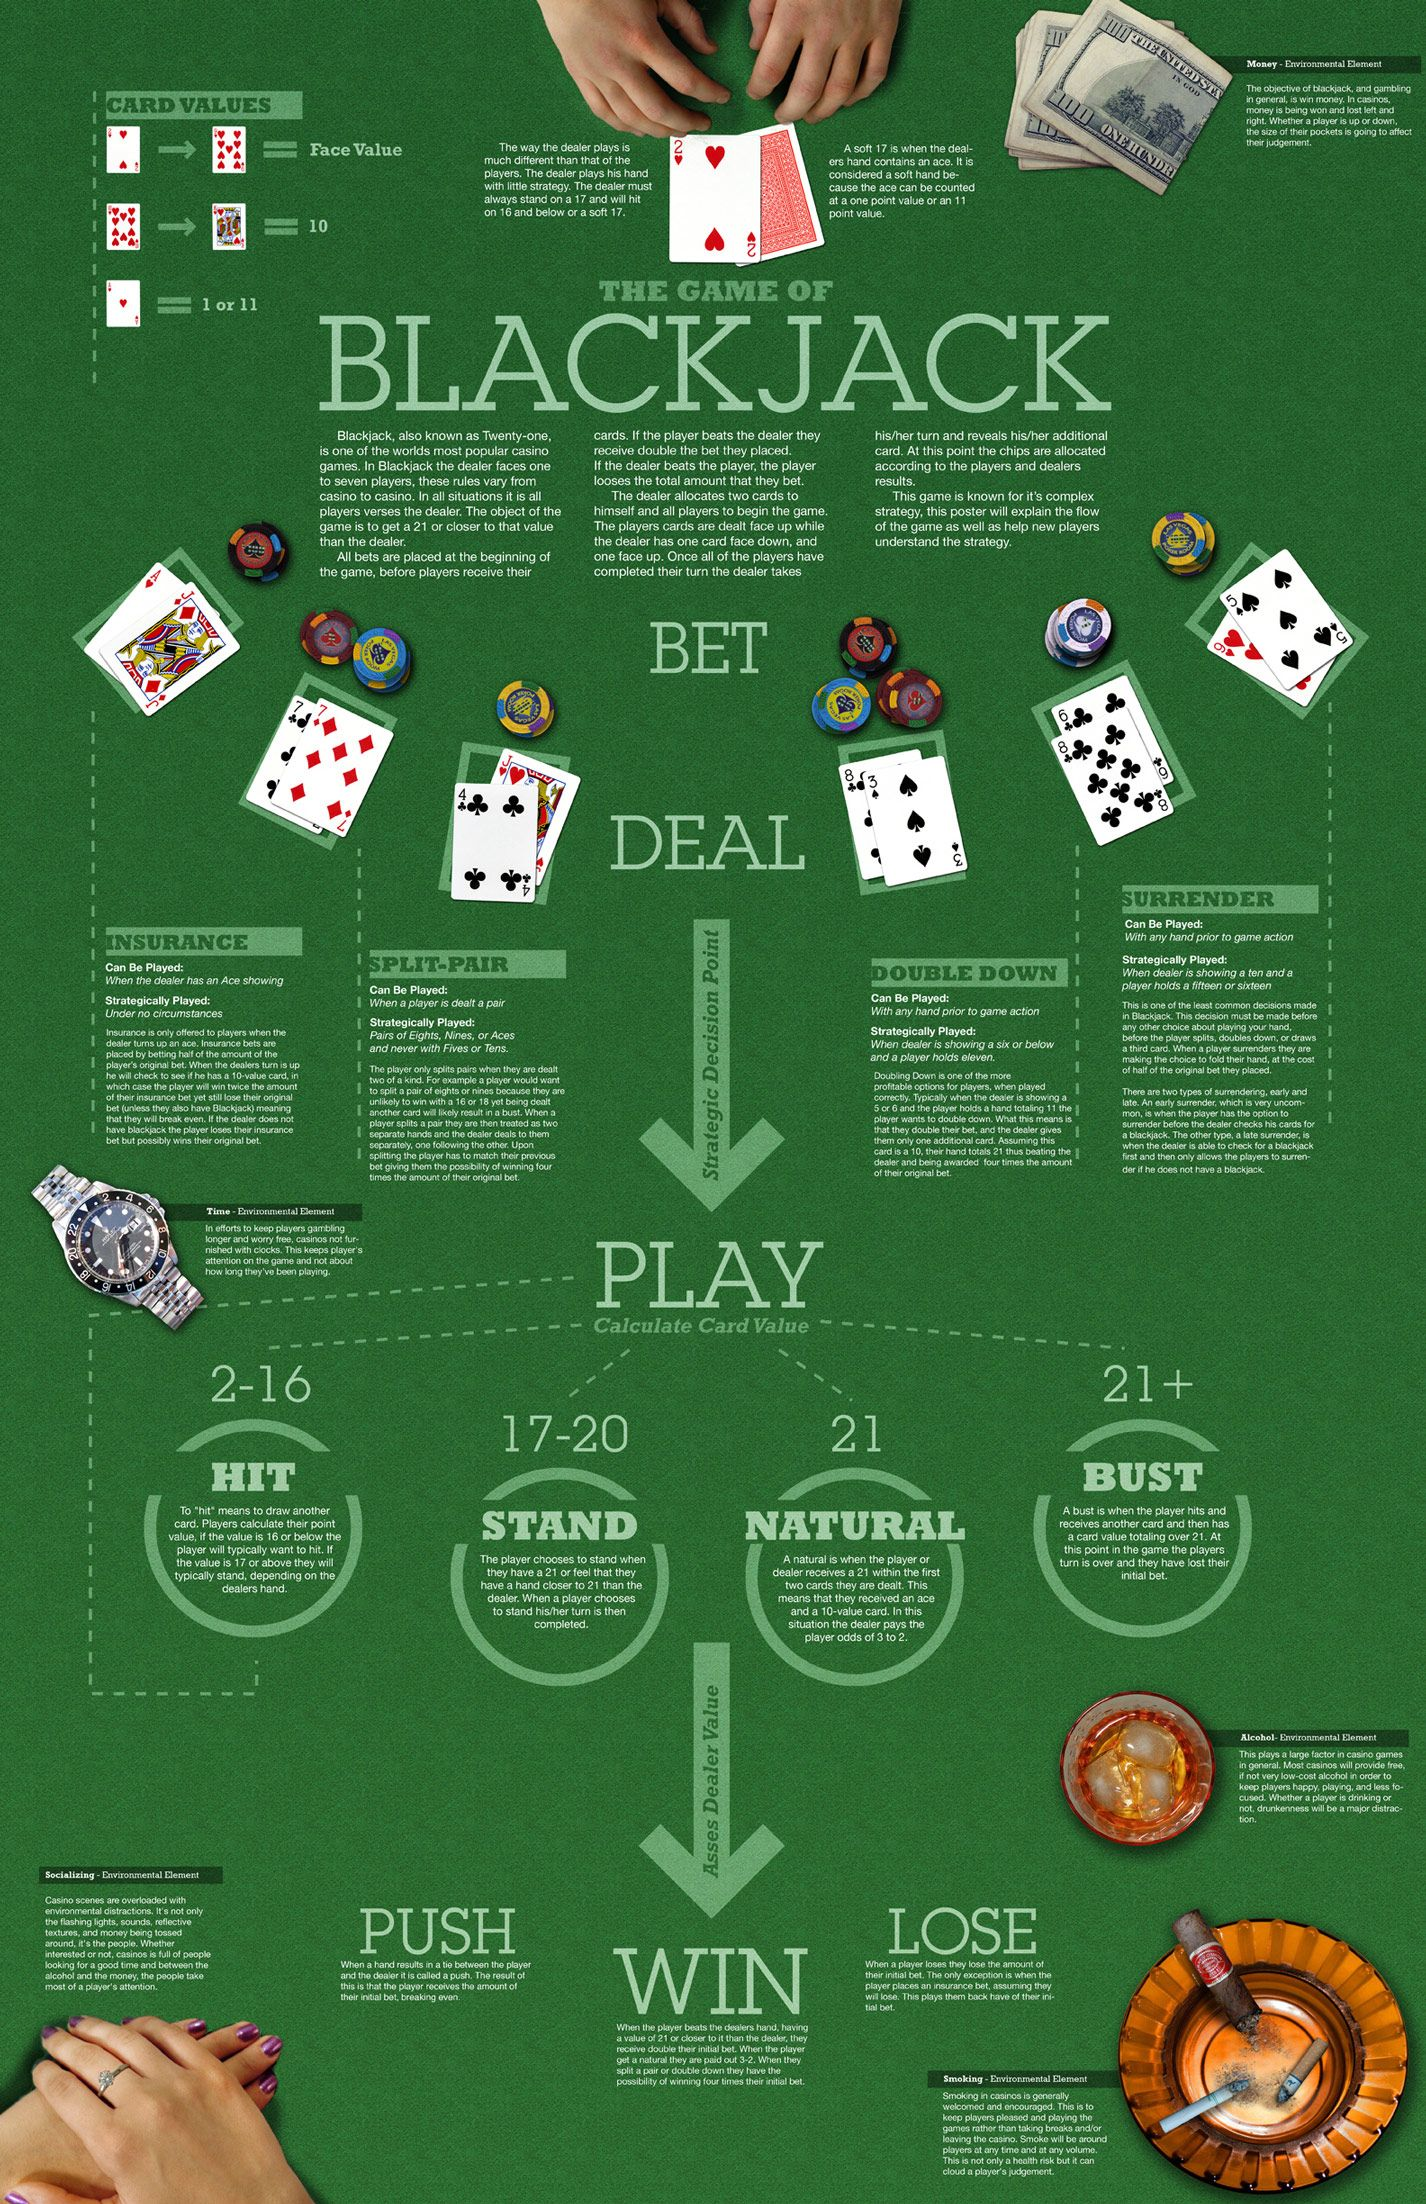 Marketing In Online Gambling The Career Opportunity